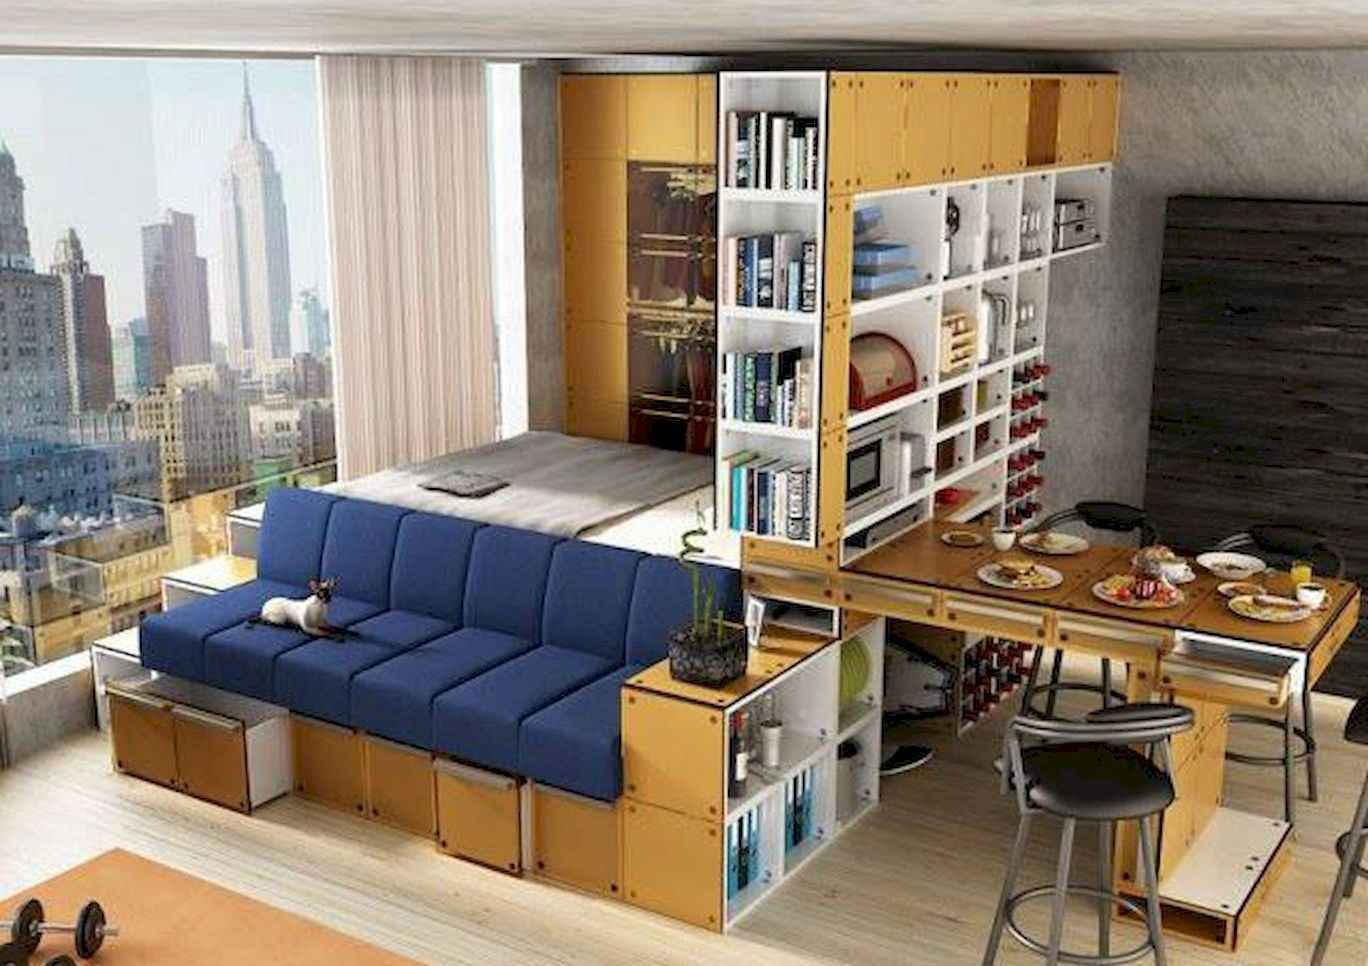 77 amazing small studio apartment decor ideas (48)